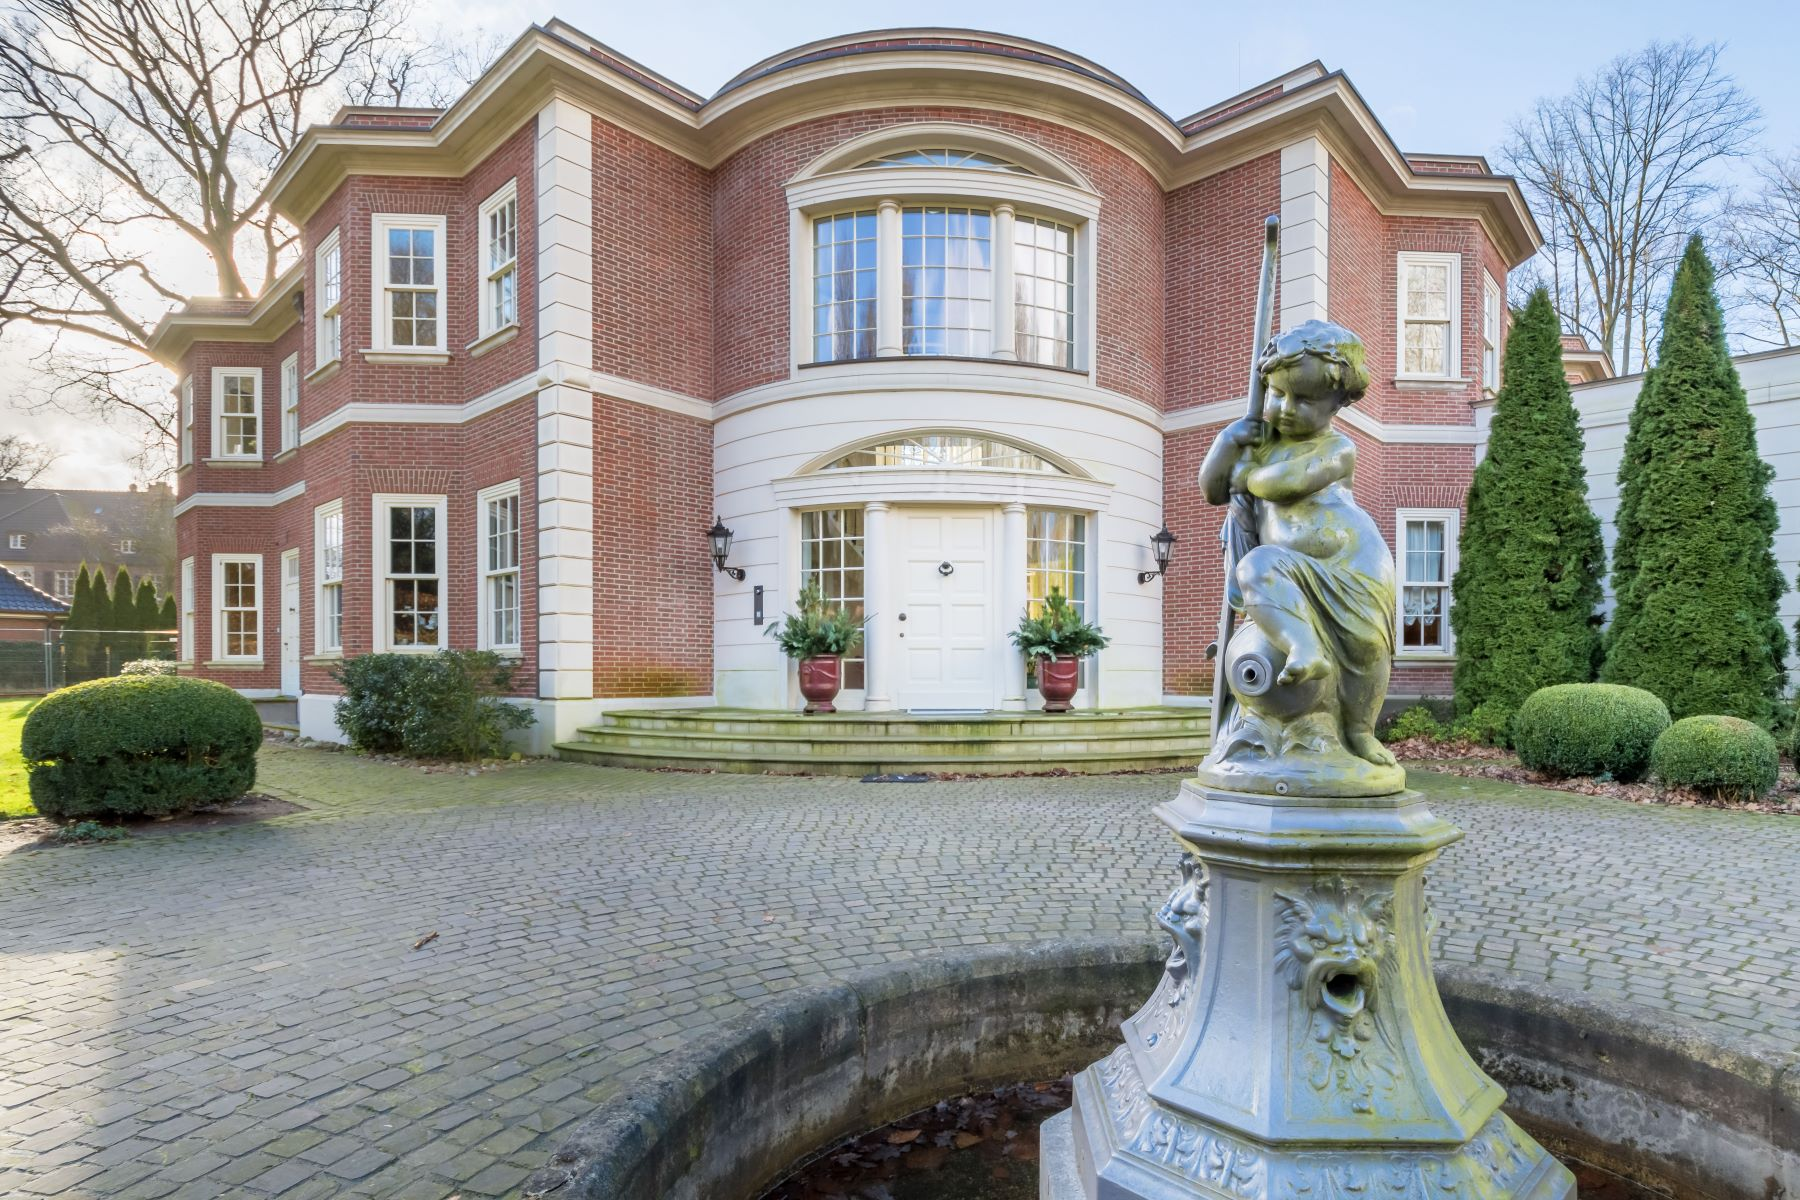 Single Family Home for Sale at Spectacular family residence in beautiful neighborhood Hamburg, Hamburg 22609 Germany